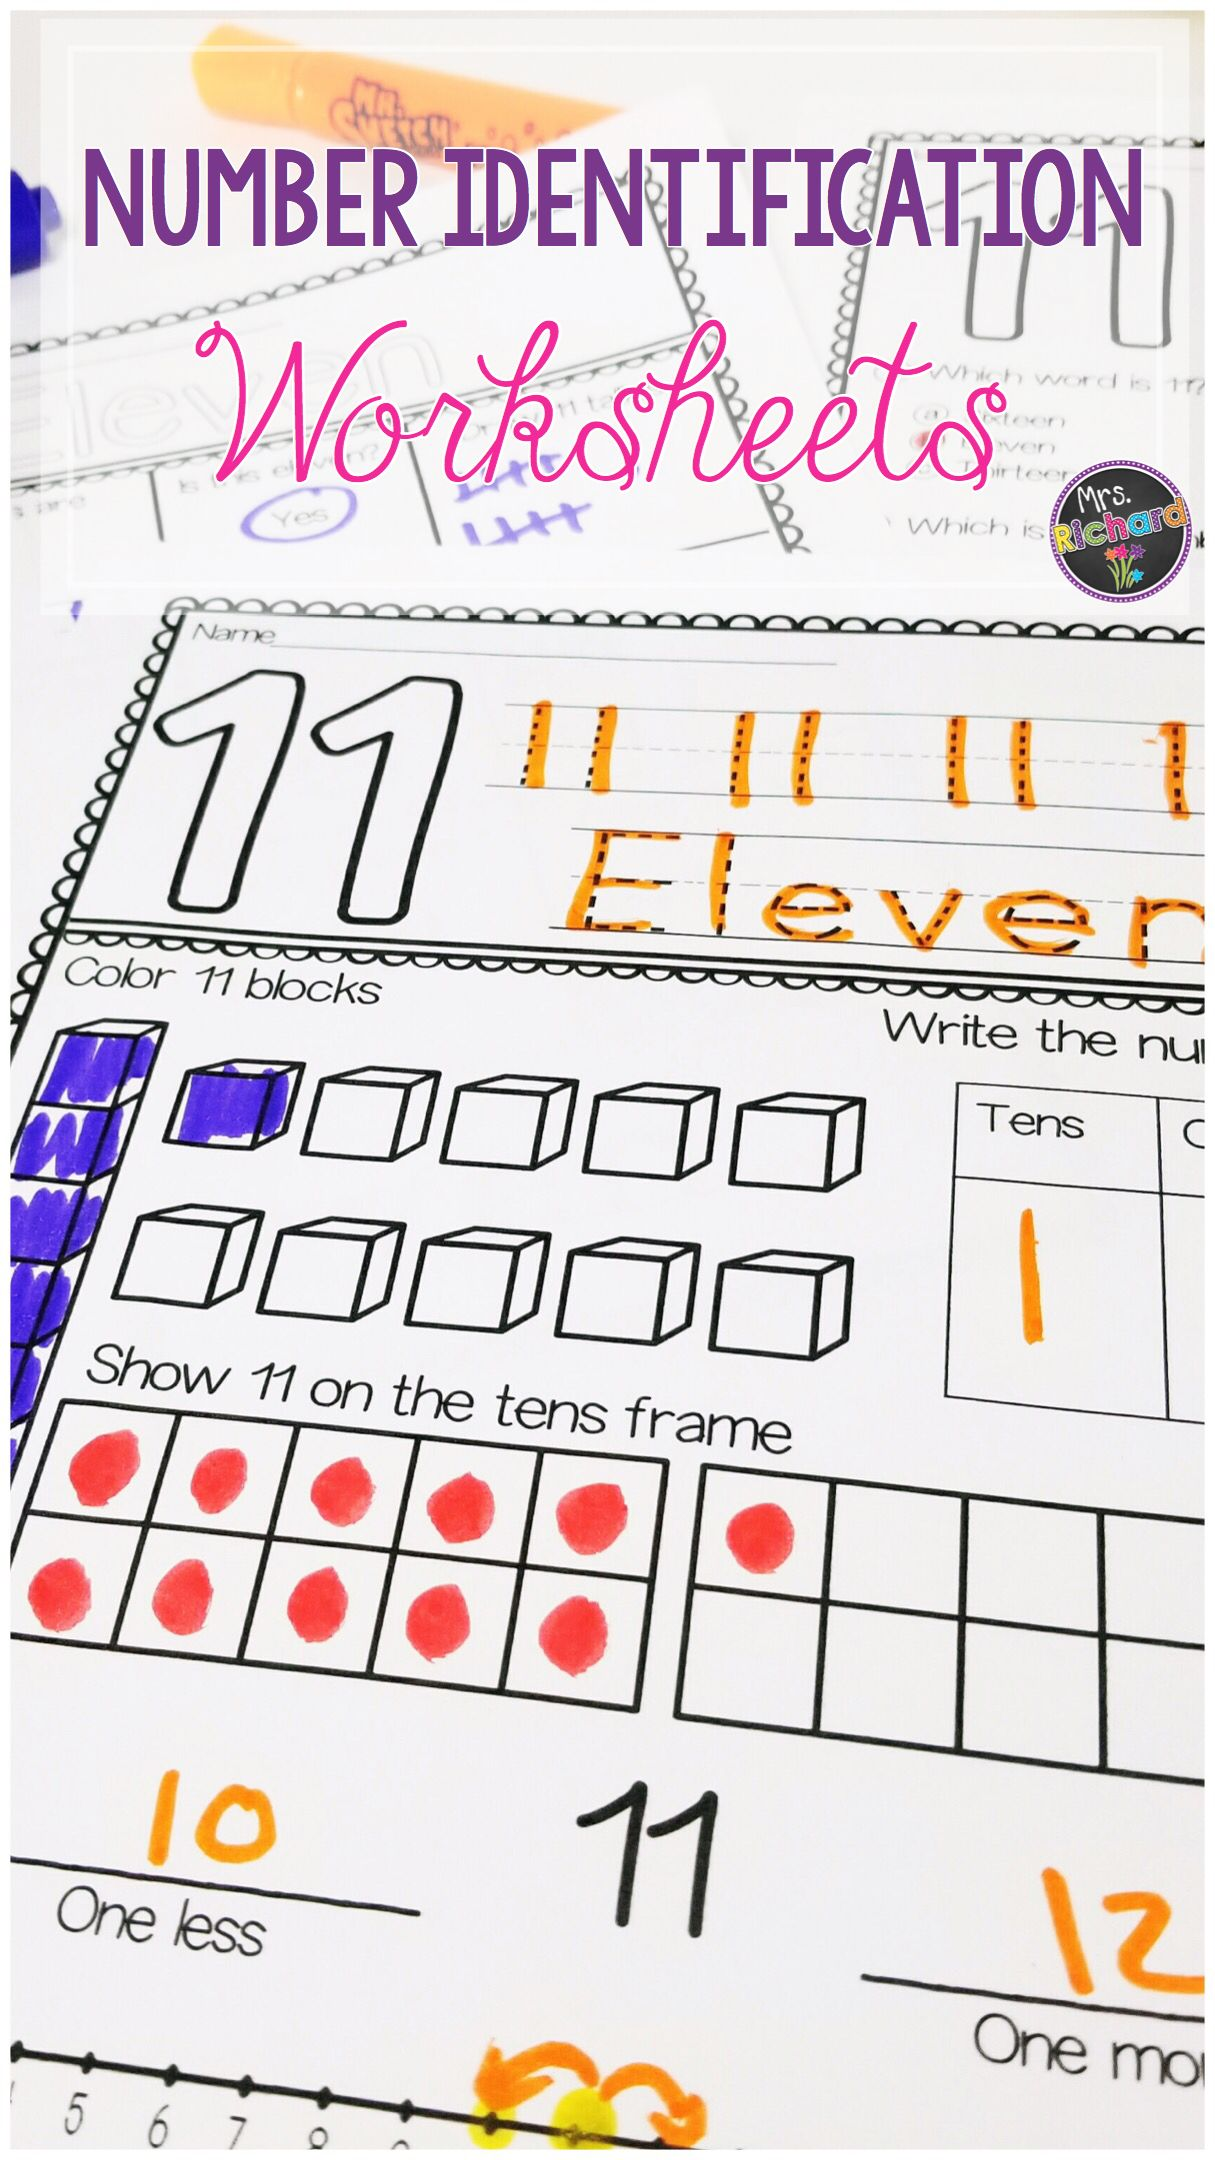 Worksheets Identifying Numbers Worksheets numbers 11 20 worksheets mrs richards exceptional education students can practice identifying daily with a different activity worksheet that focus on tens frames addition and